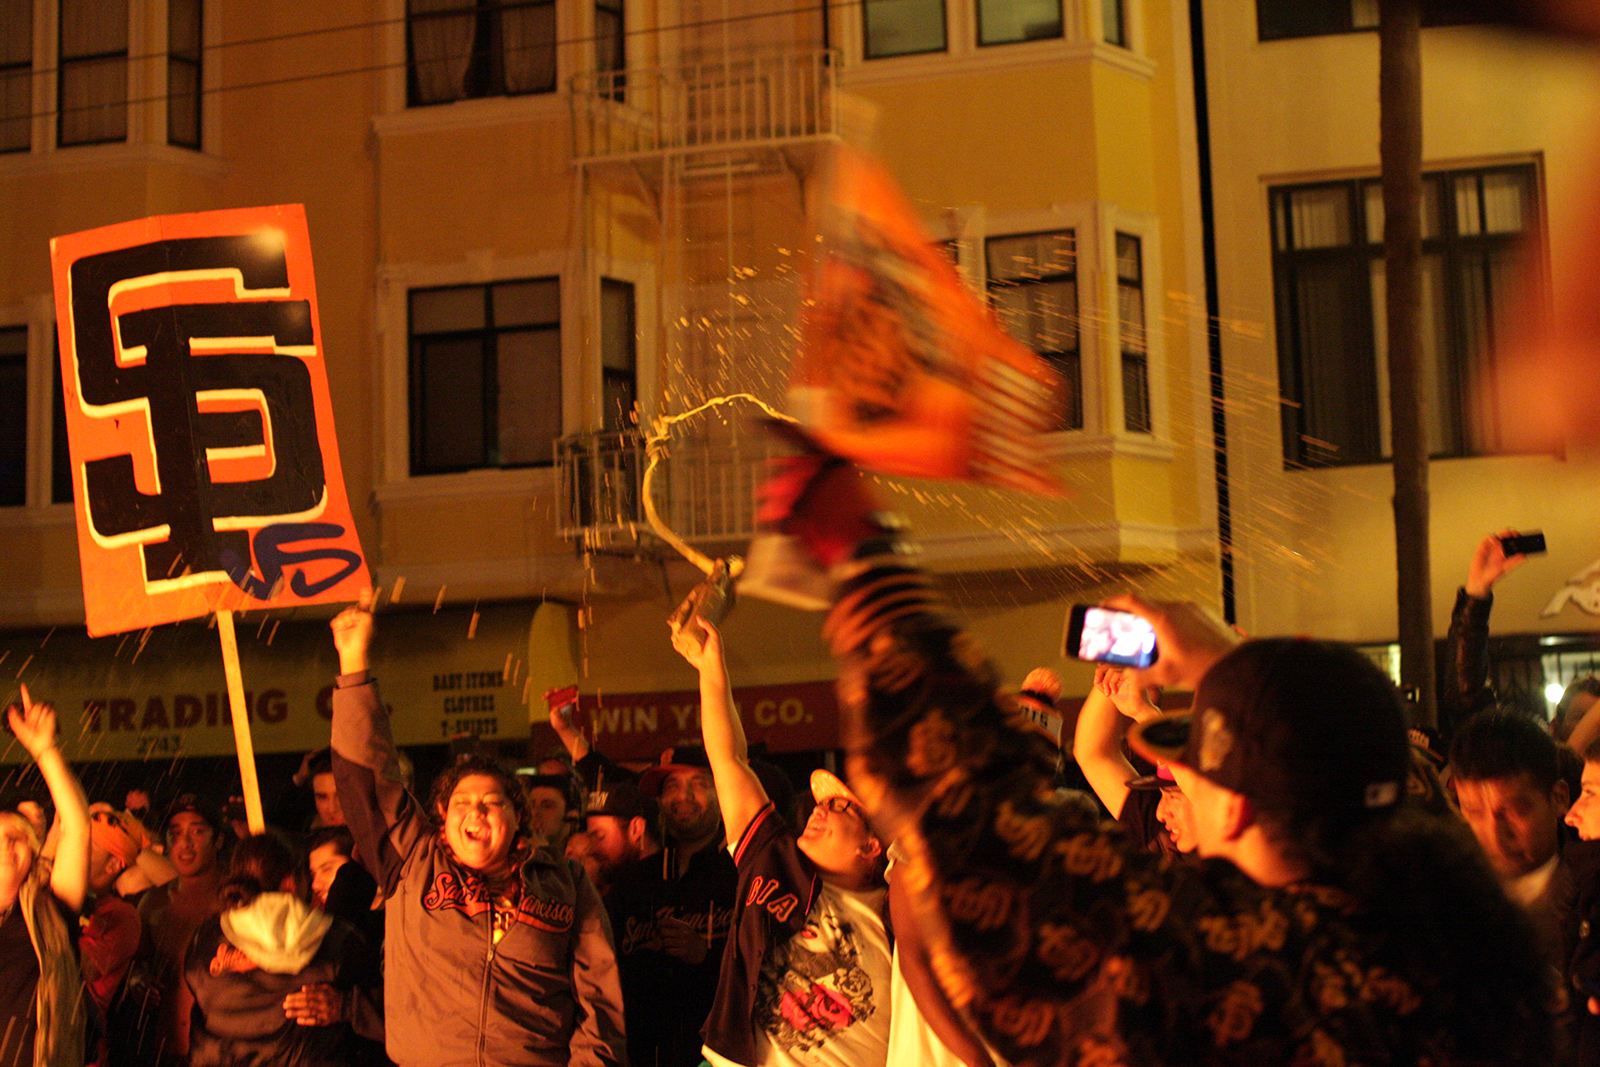 Fans Take to the Street After Giants Win World Series